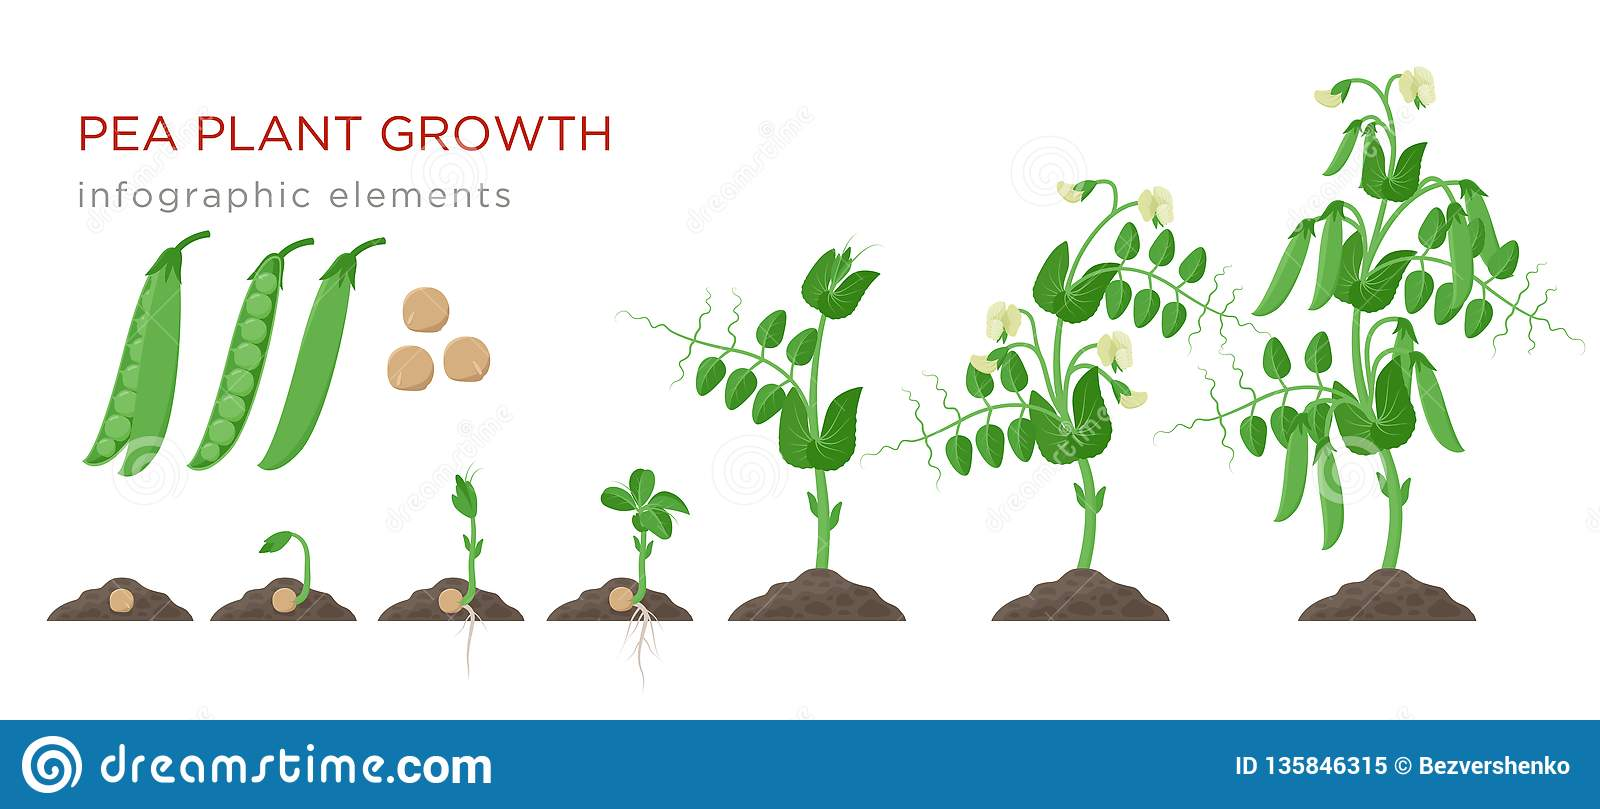 Pea Plant Growth Stages Infographic Elements In Flat